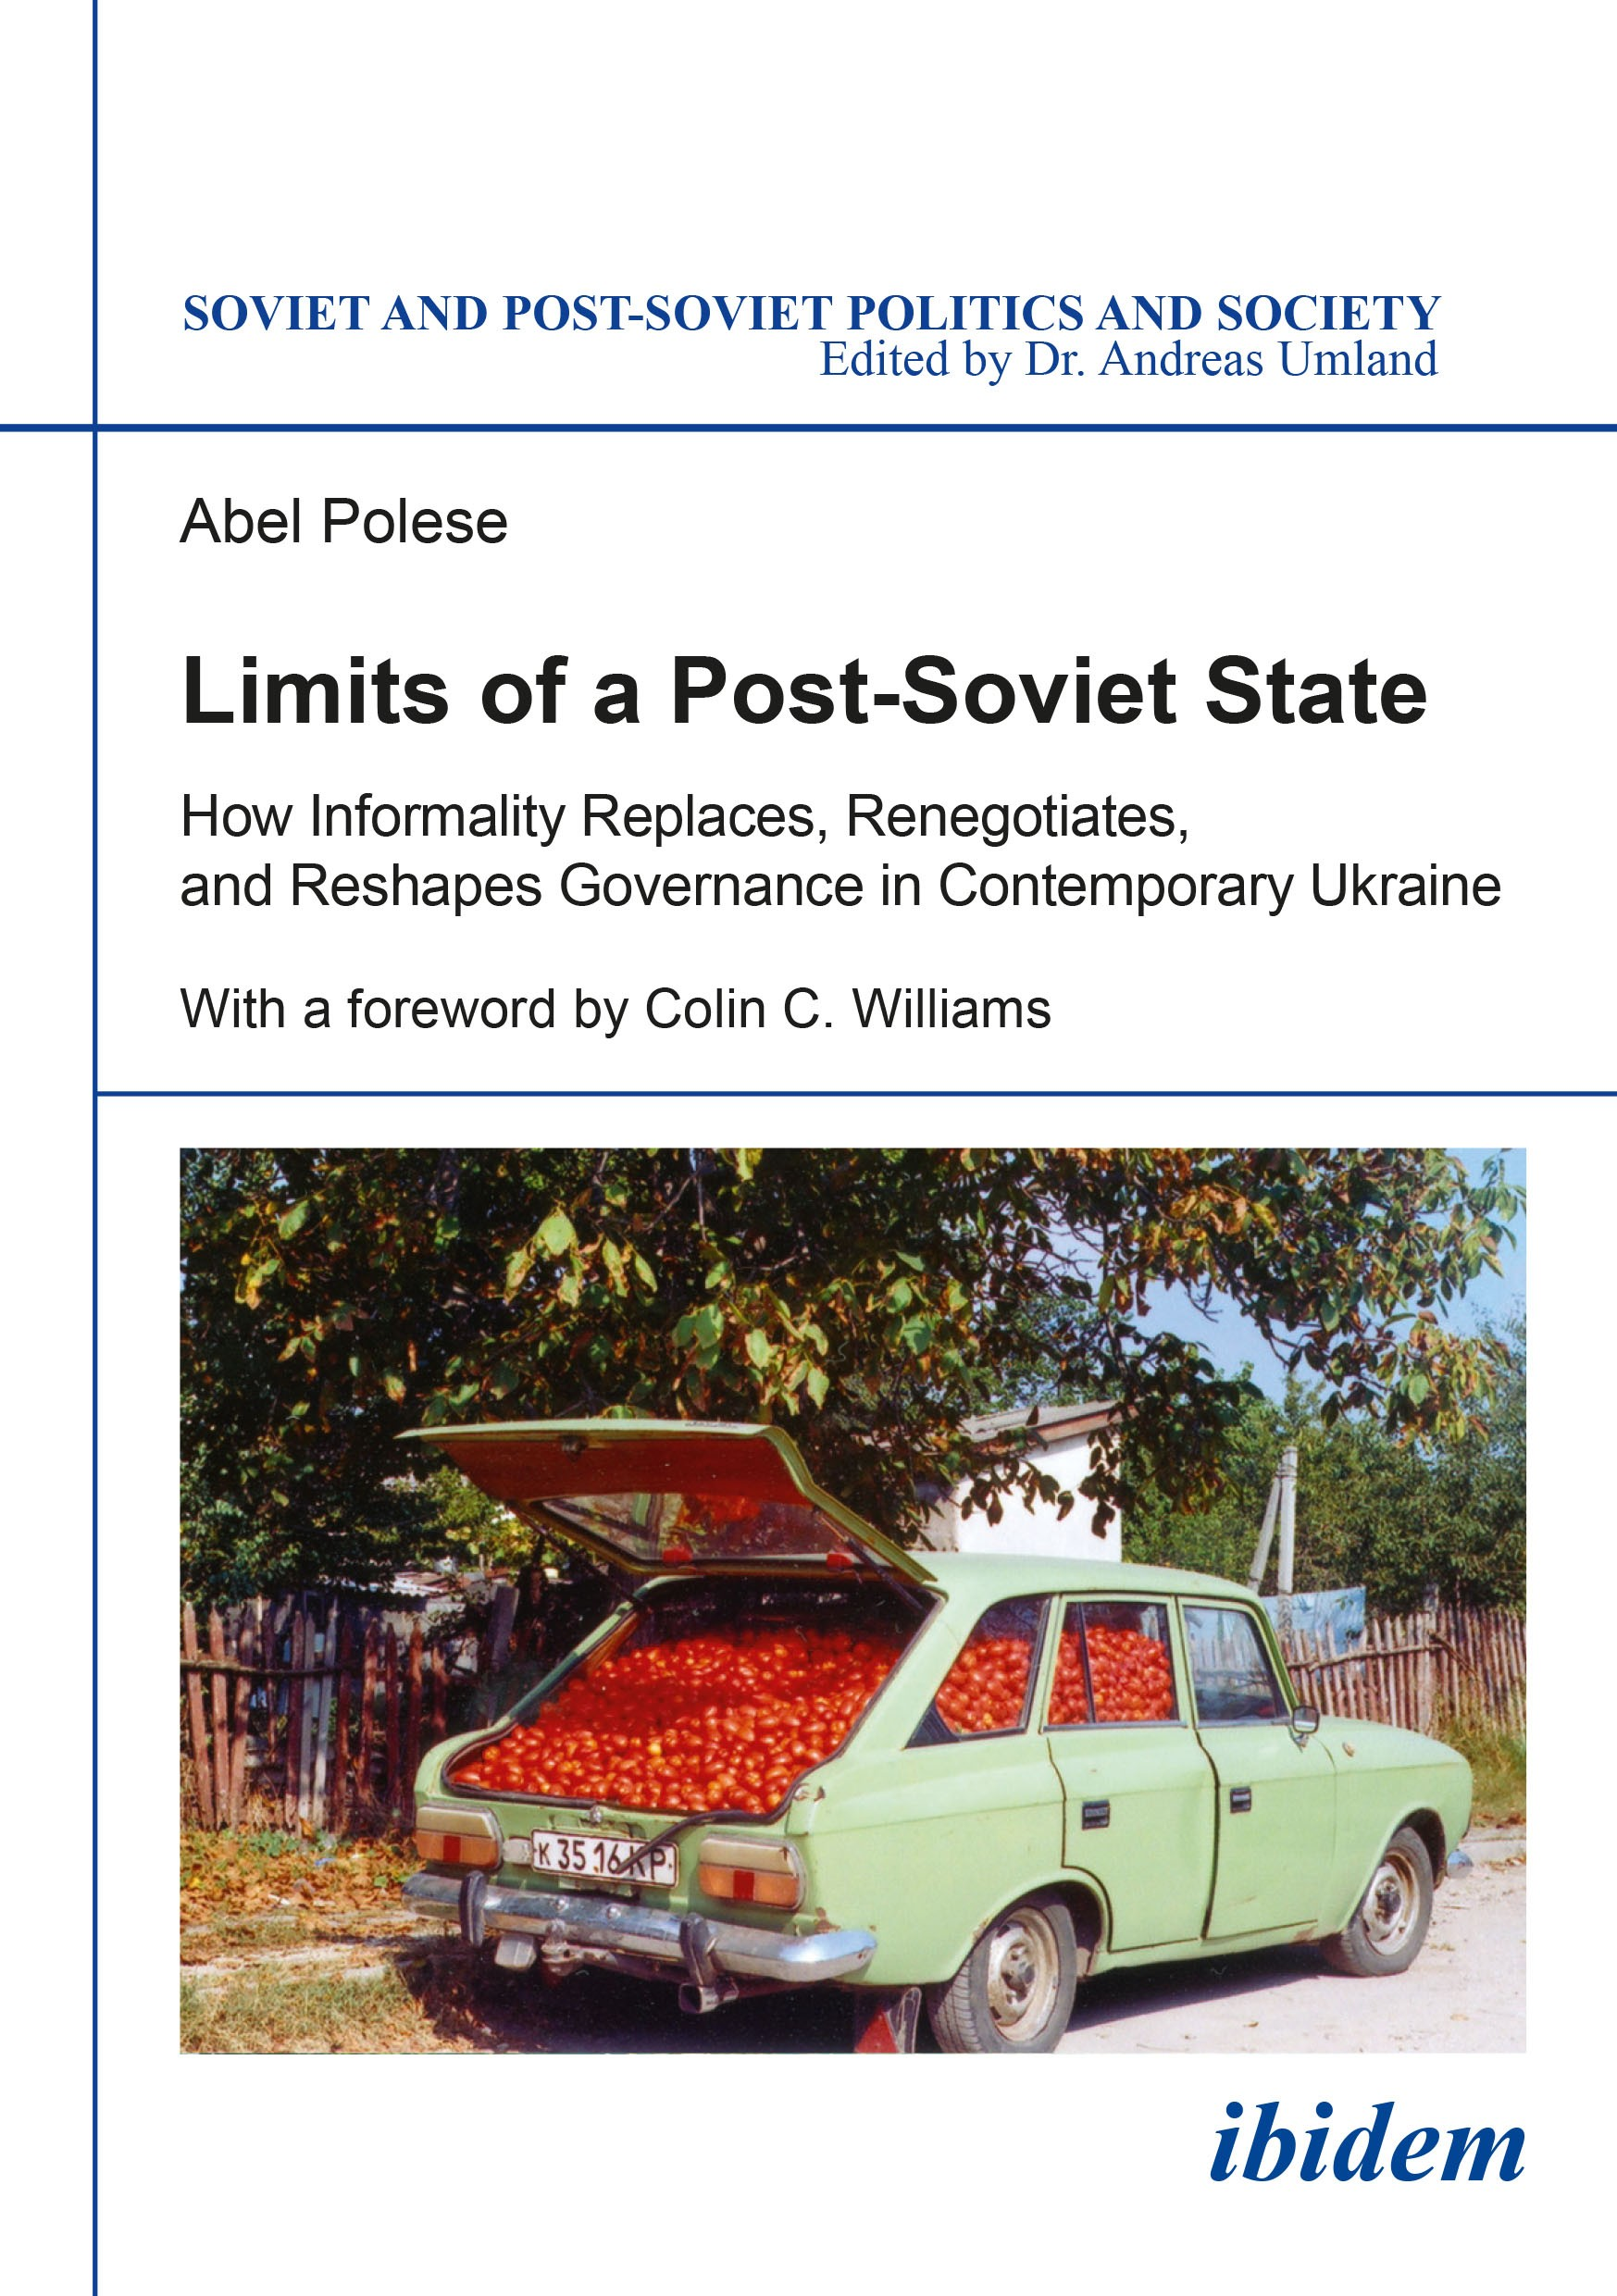 Limits of a Post-Soviet State